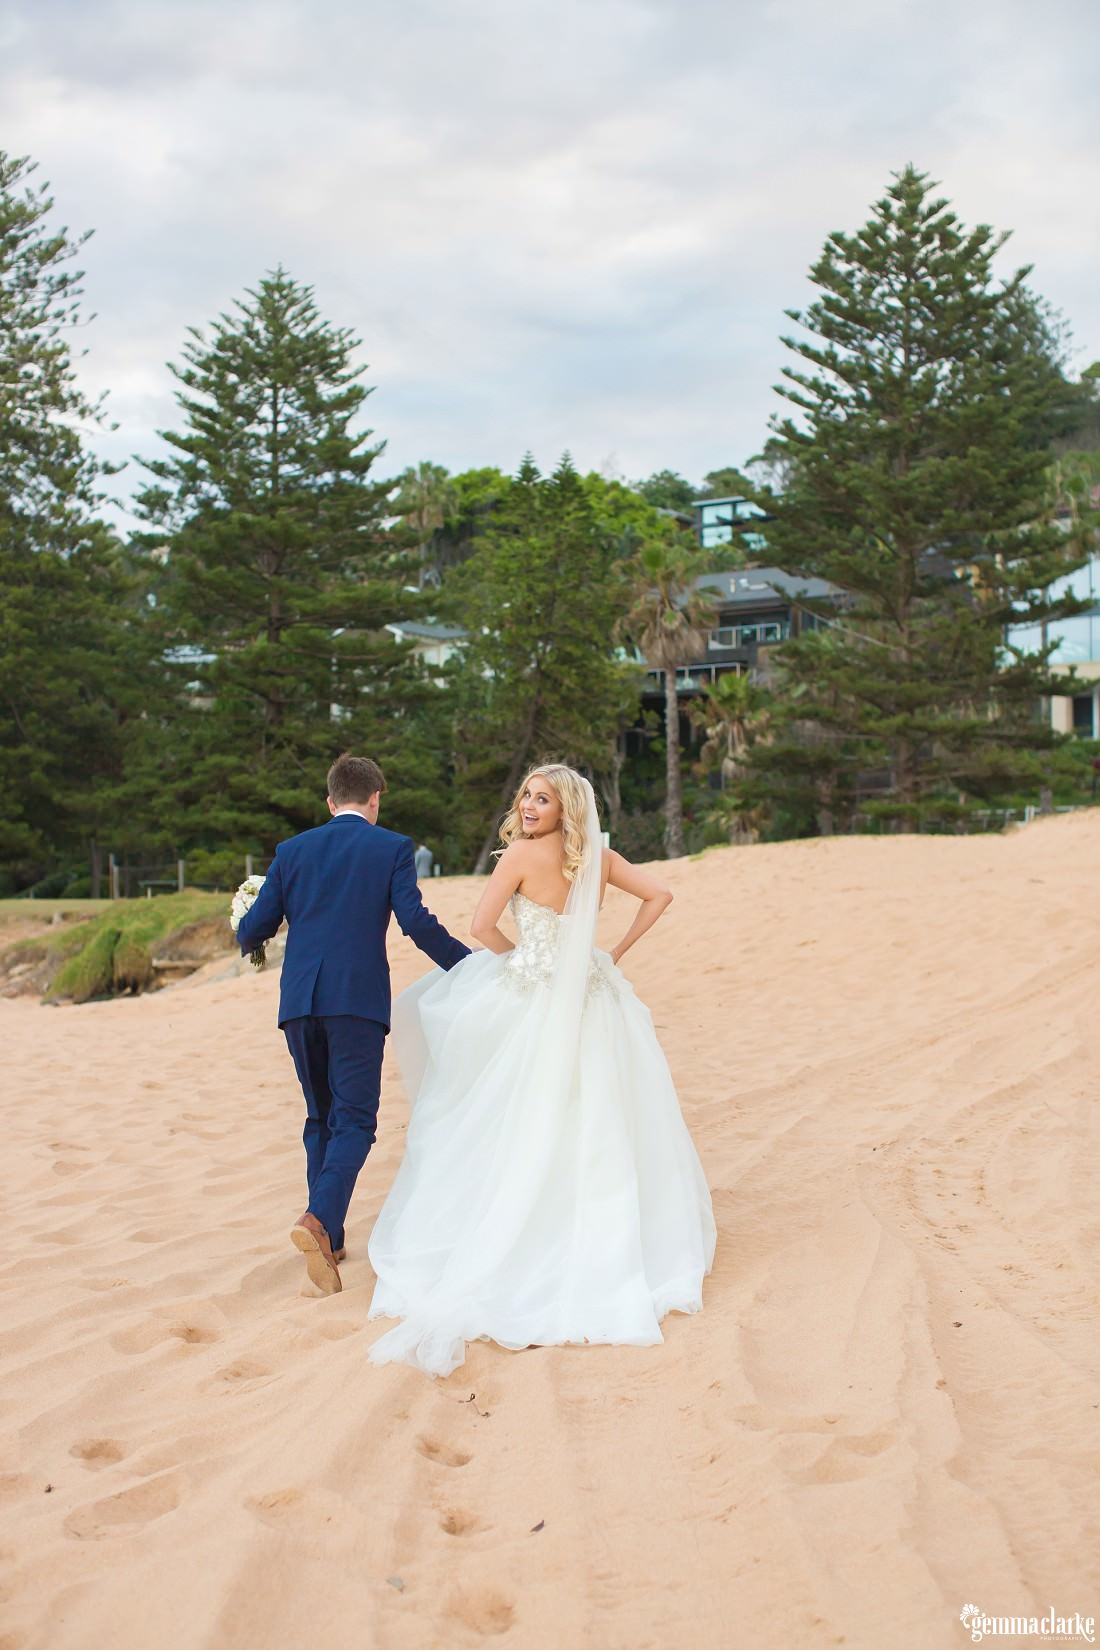 A bride smiles and looks back over her shoulder as she and her groom walk along a beach